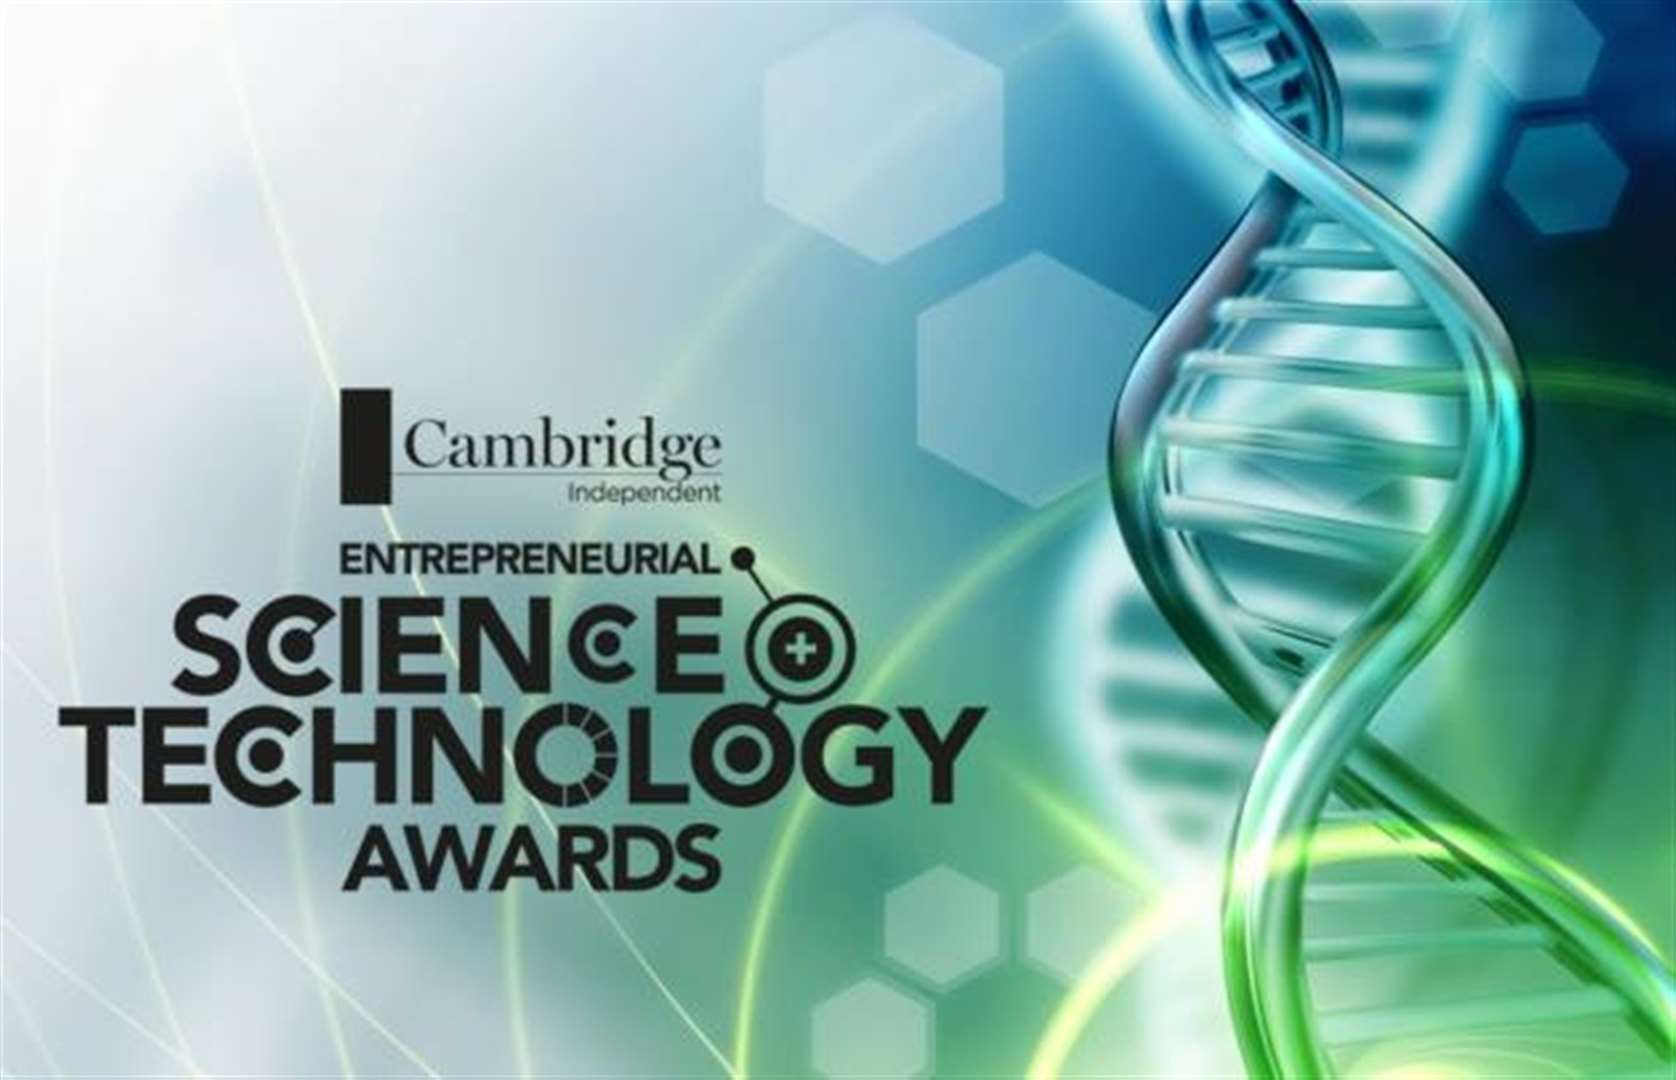 Get on board for the Cambridge Independent Entrepreneurial Science and Technology Awards